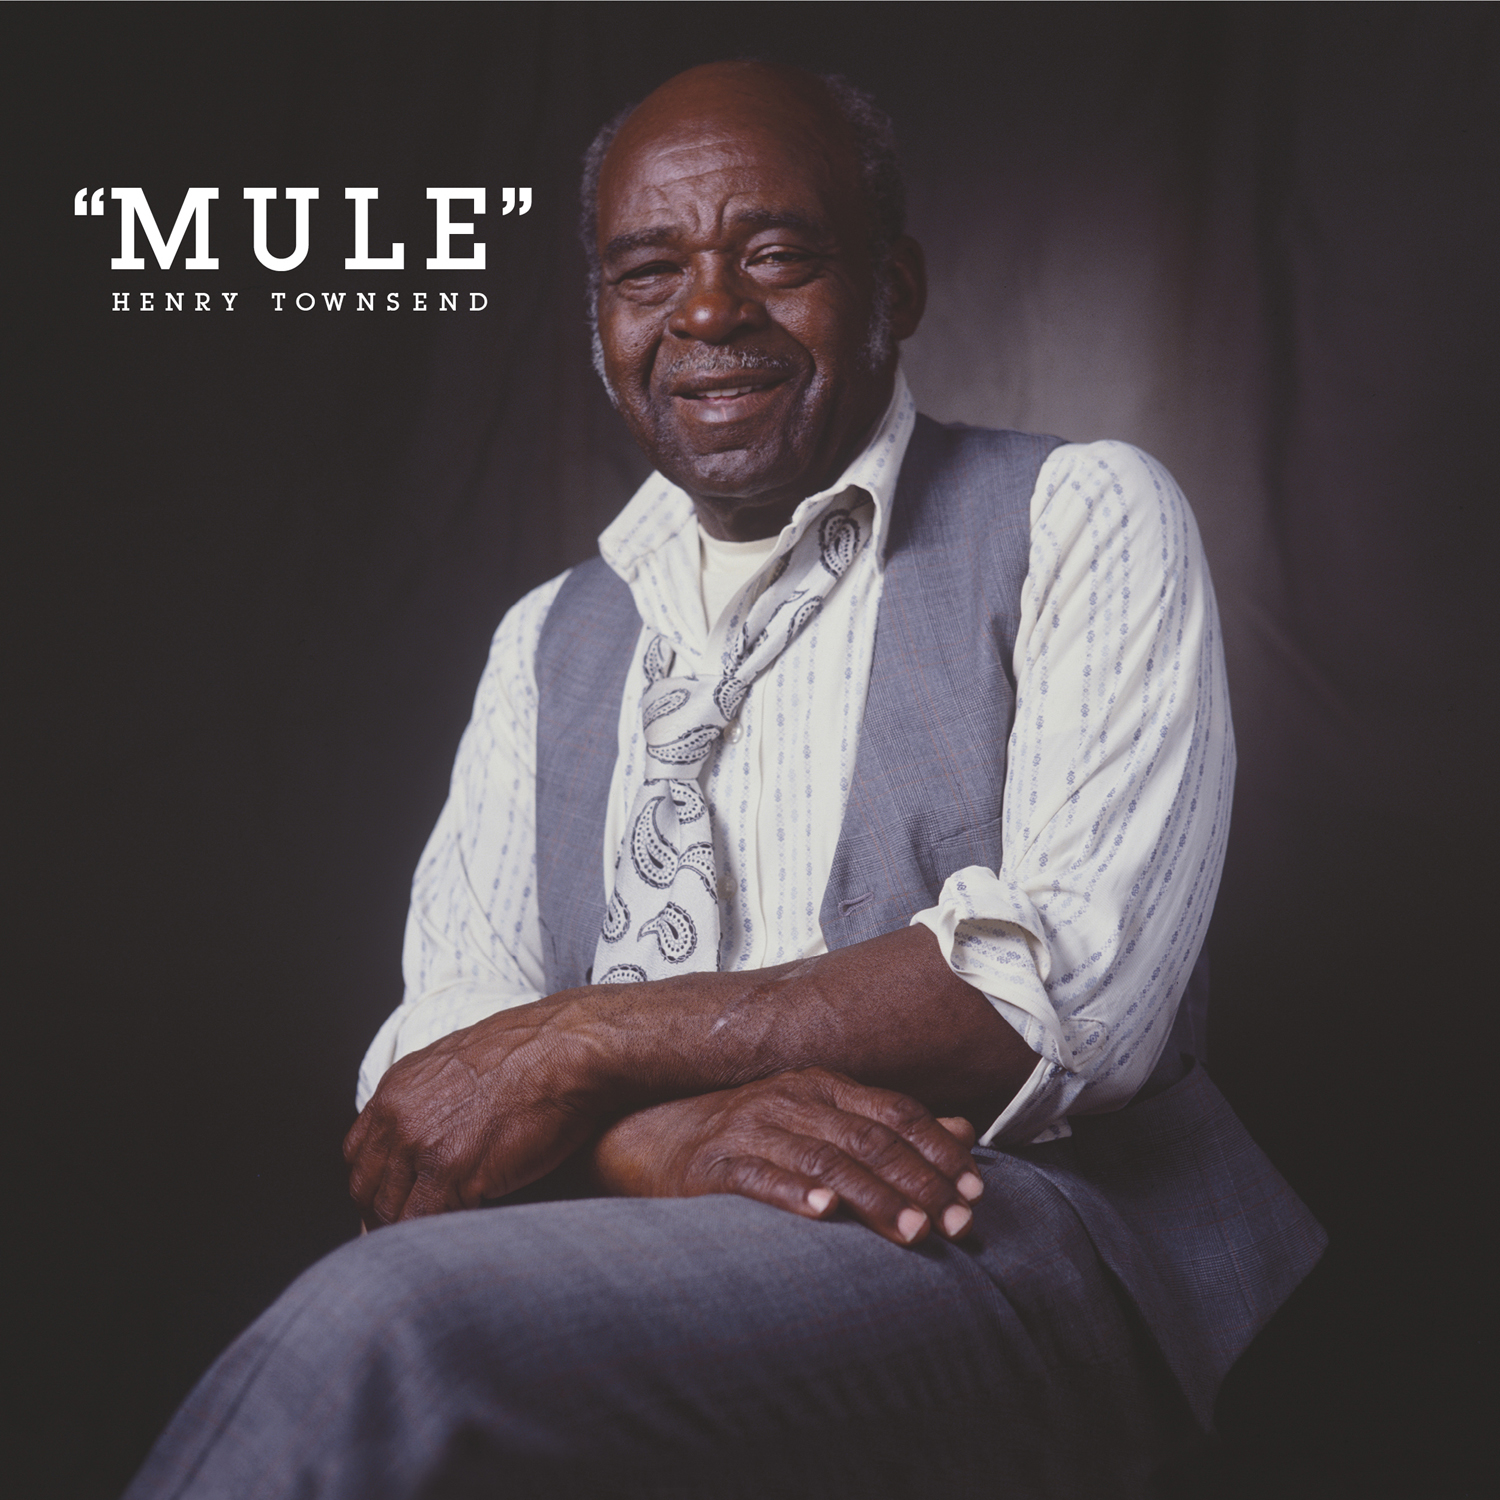 """Henry Townsend - """"Mule""""  Release Date: December 7, 2018 Label: Omnivore Recordings  SERVICE: Mastering NUMBER OF DISCS: 1 GENRE: Blues FORMAT: CD"""